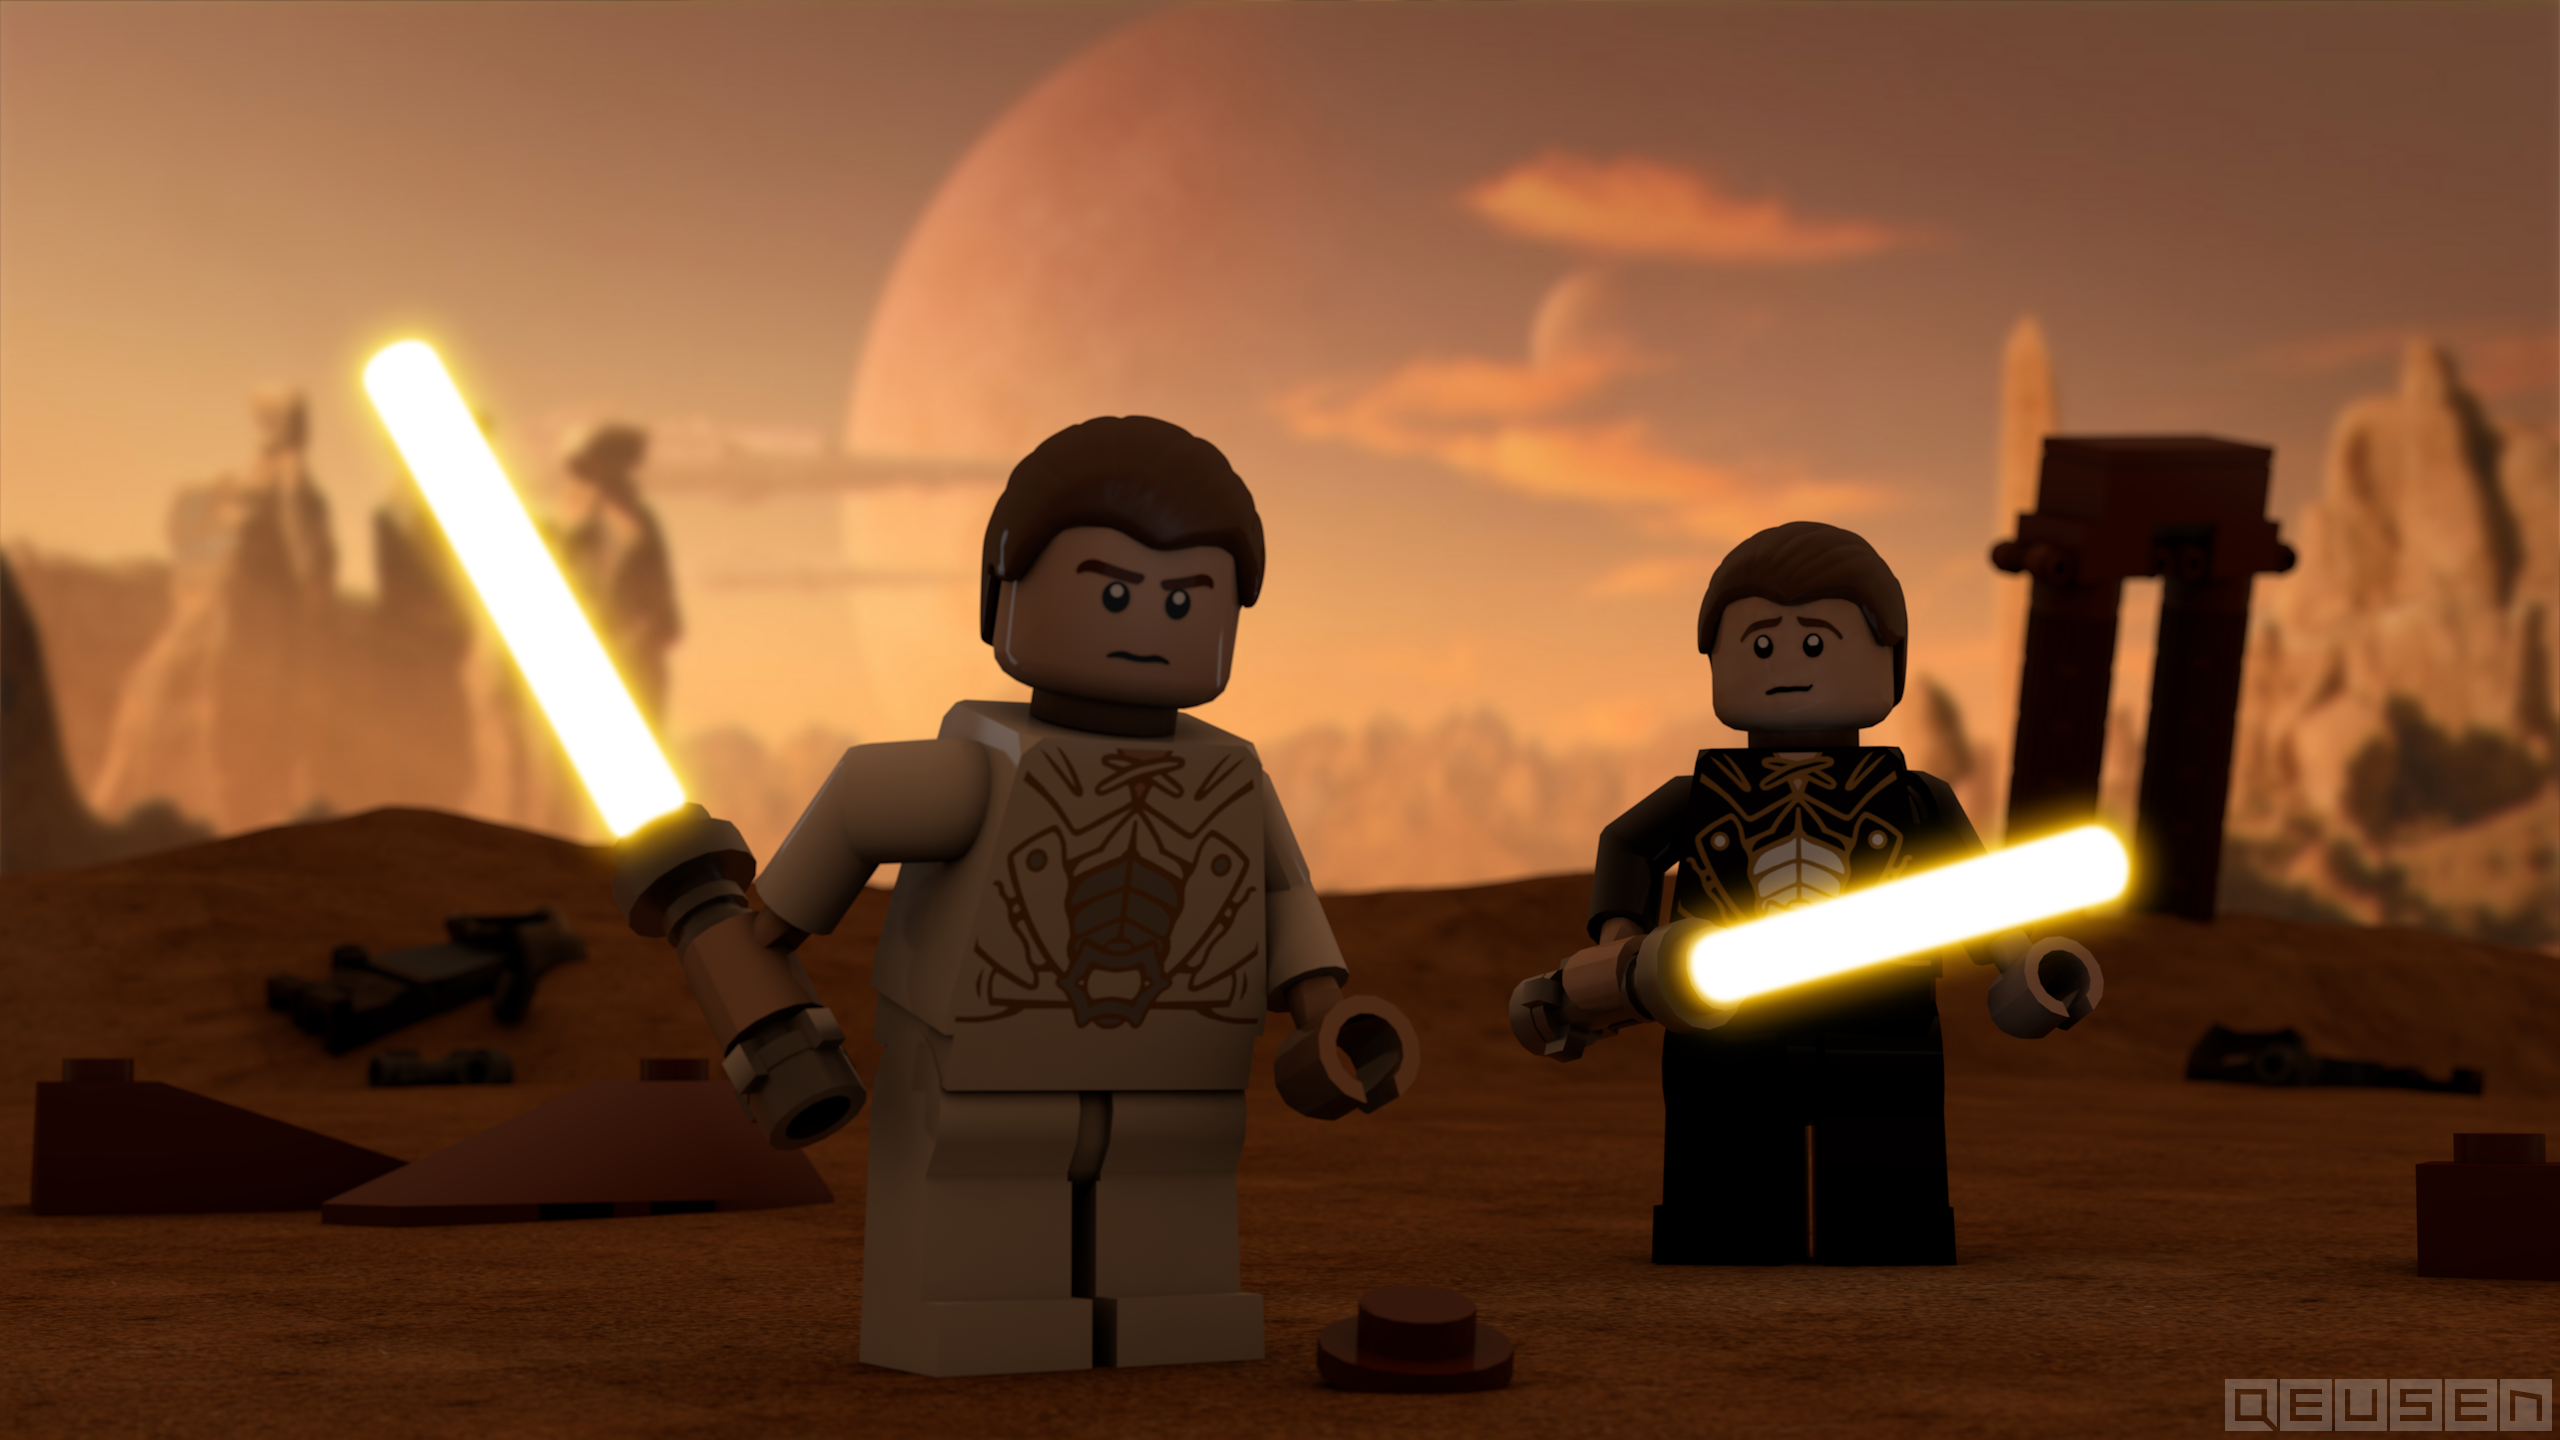 swtor__knights_of_the_fallen_empire_in_lego_by_qeusen-d8yvh3t